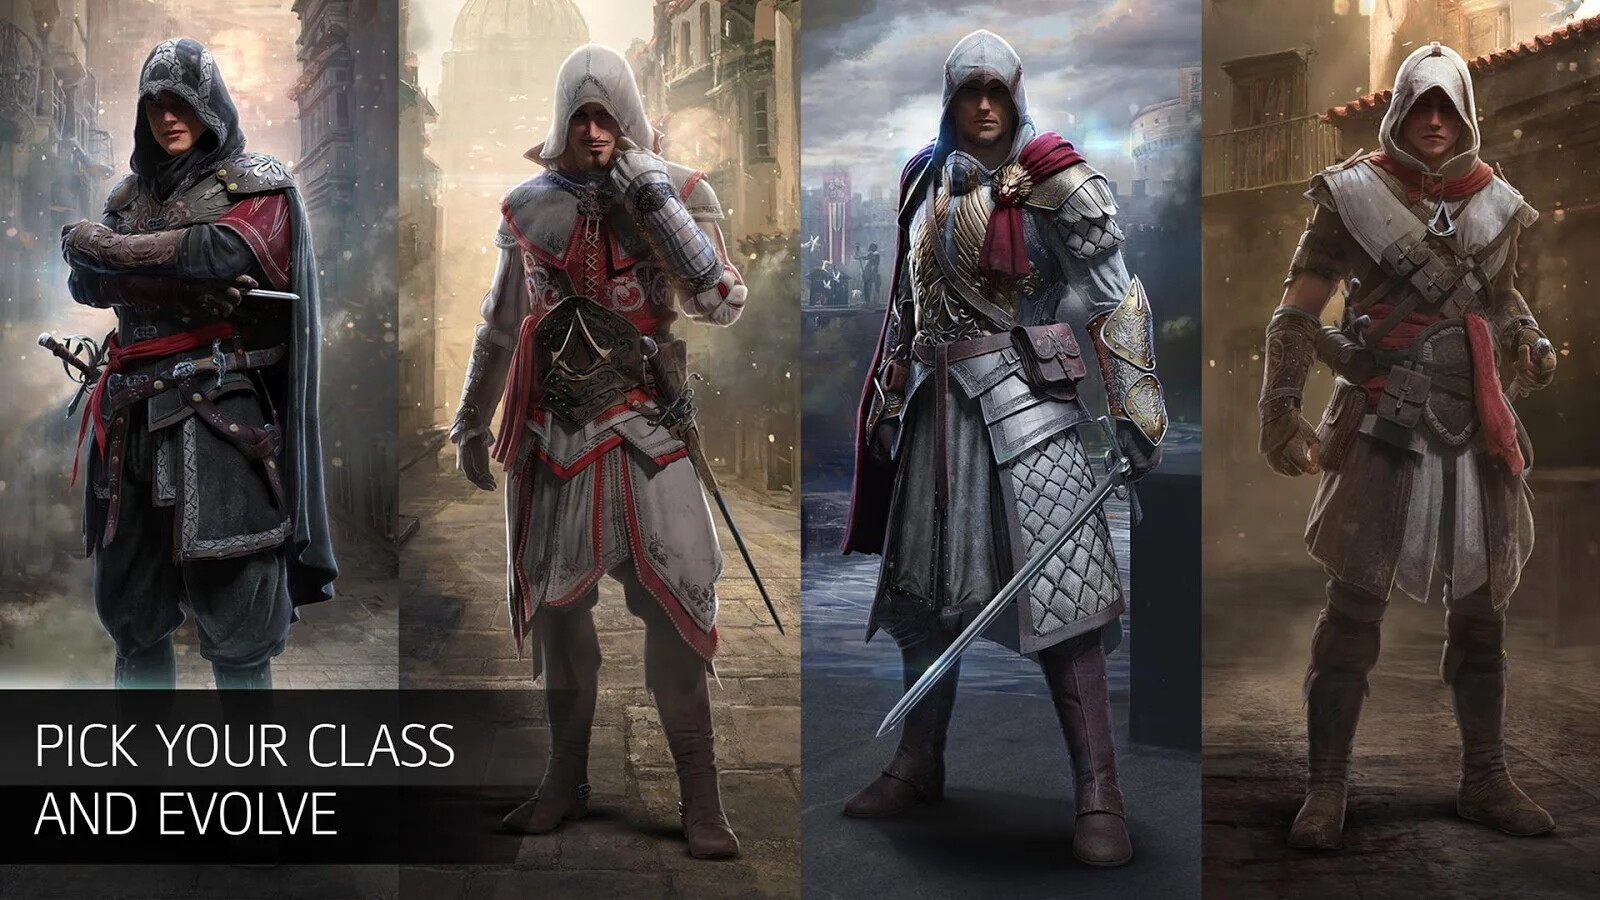 https://i-cdn.phonearena.com/images/articles/289546-image/Assassins-Creed-Identity.jpg